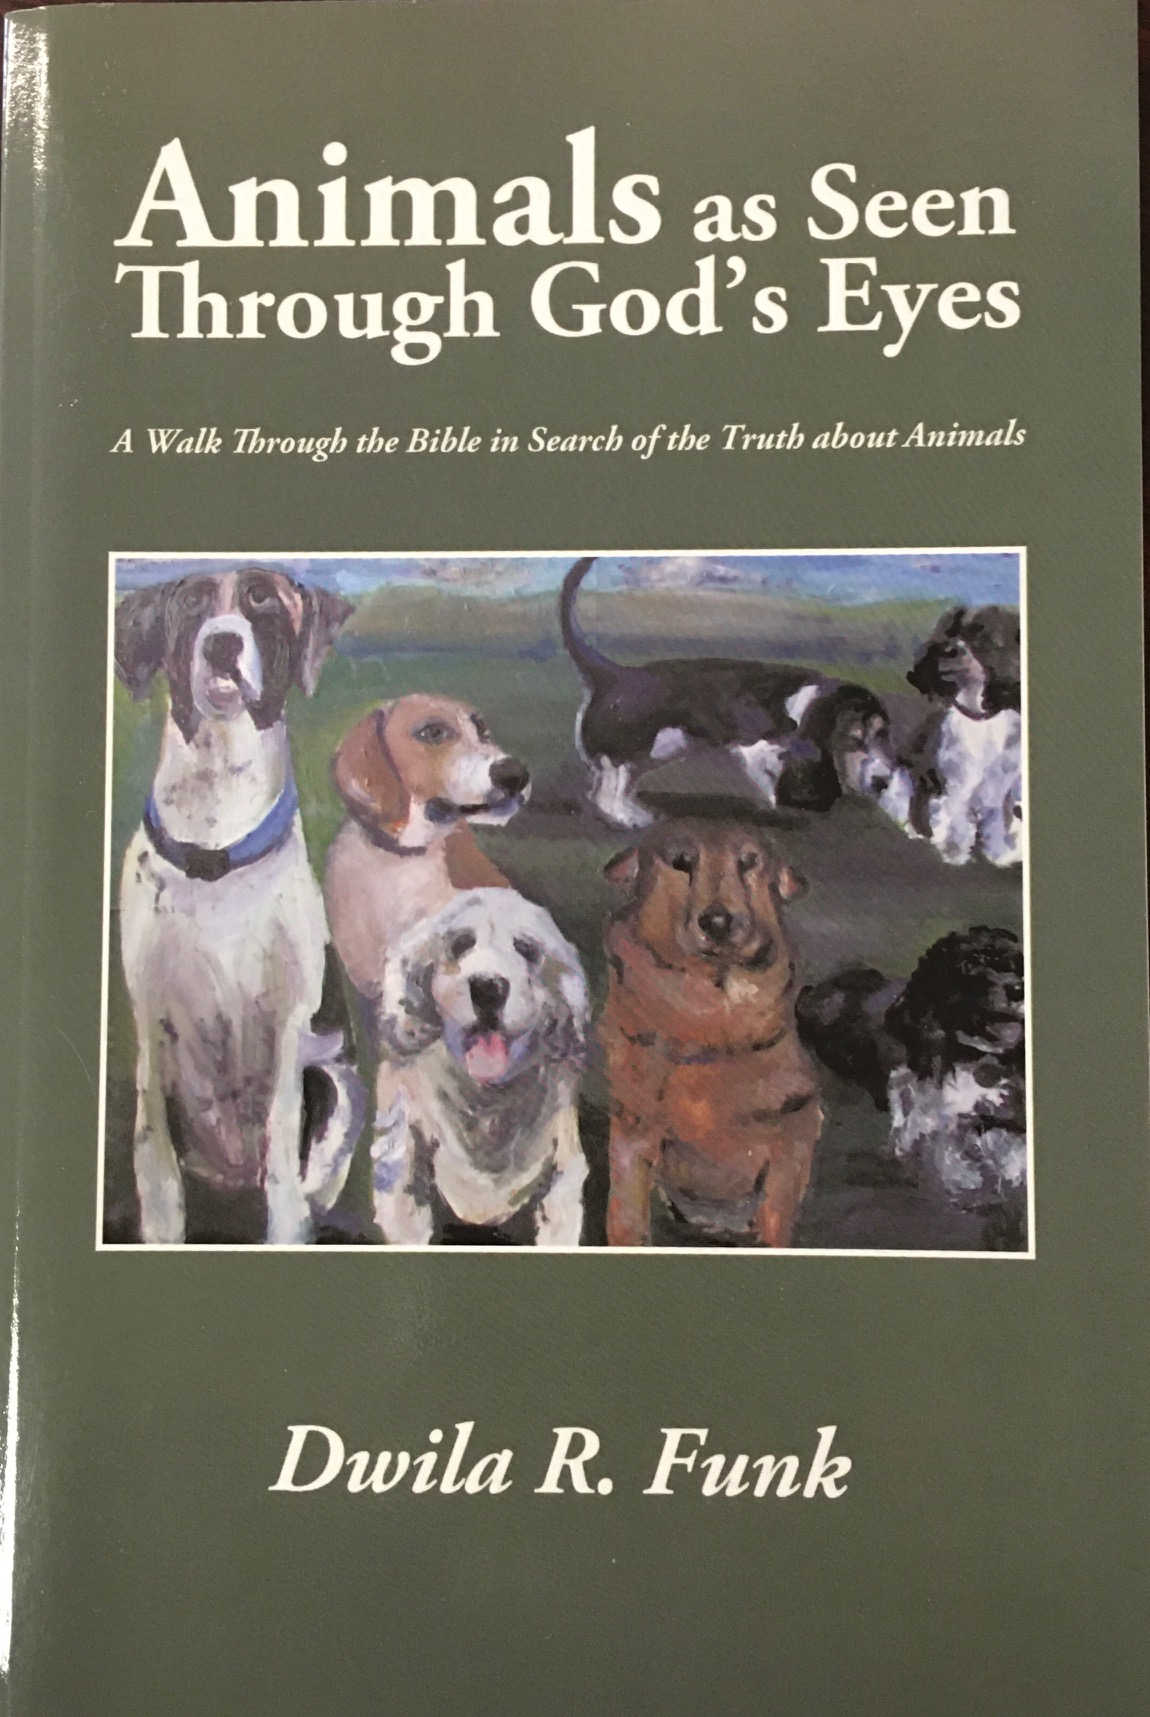 Image for Animals as Seen Through God's Eyes: A Walk Through the Bible in Search of the Truth about Animals